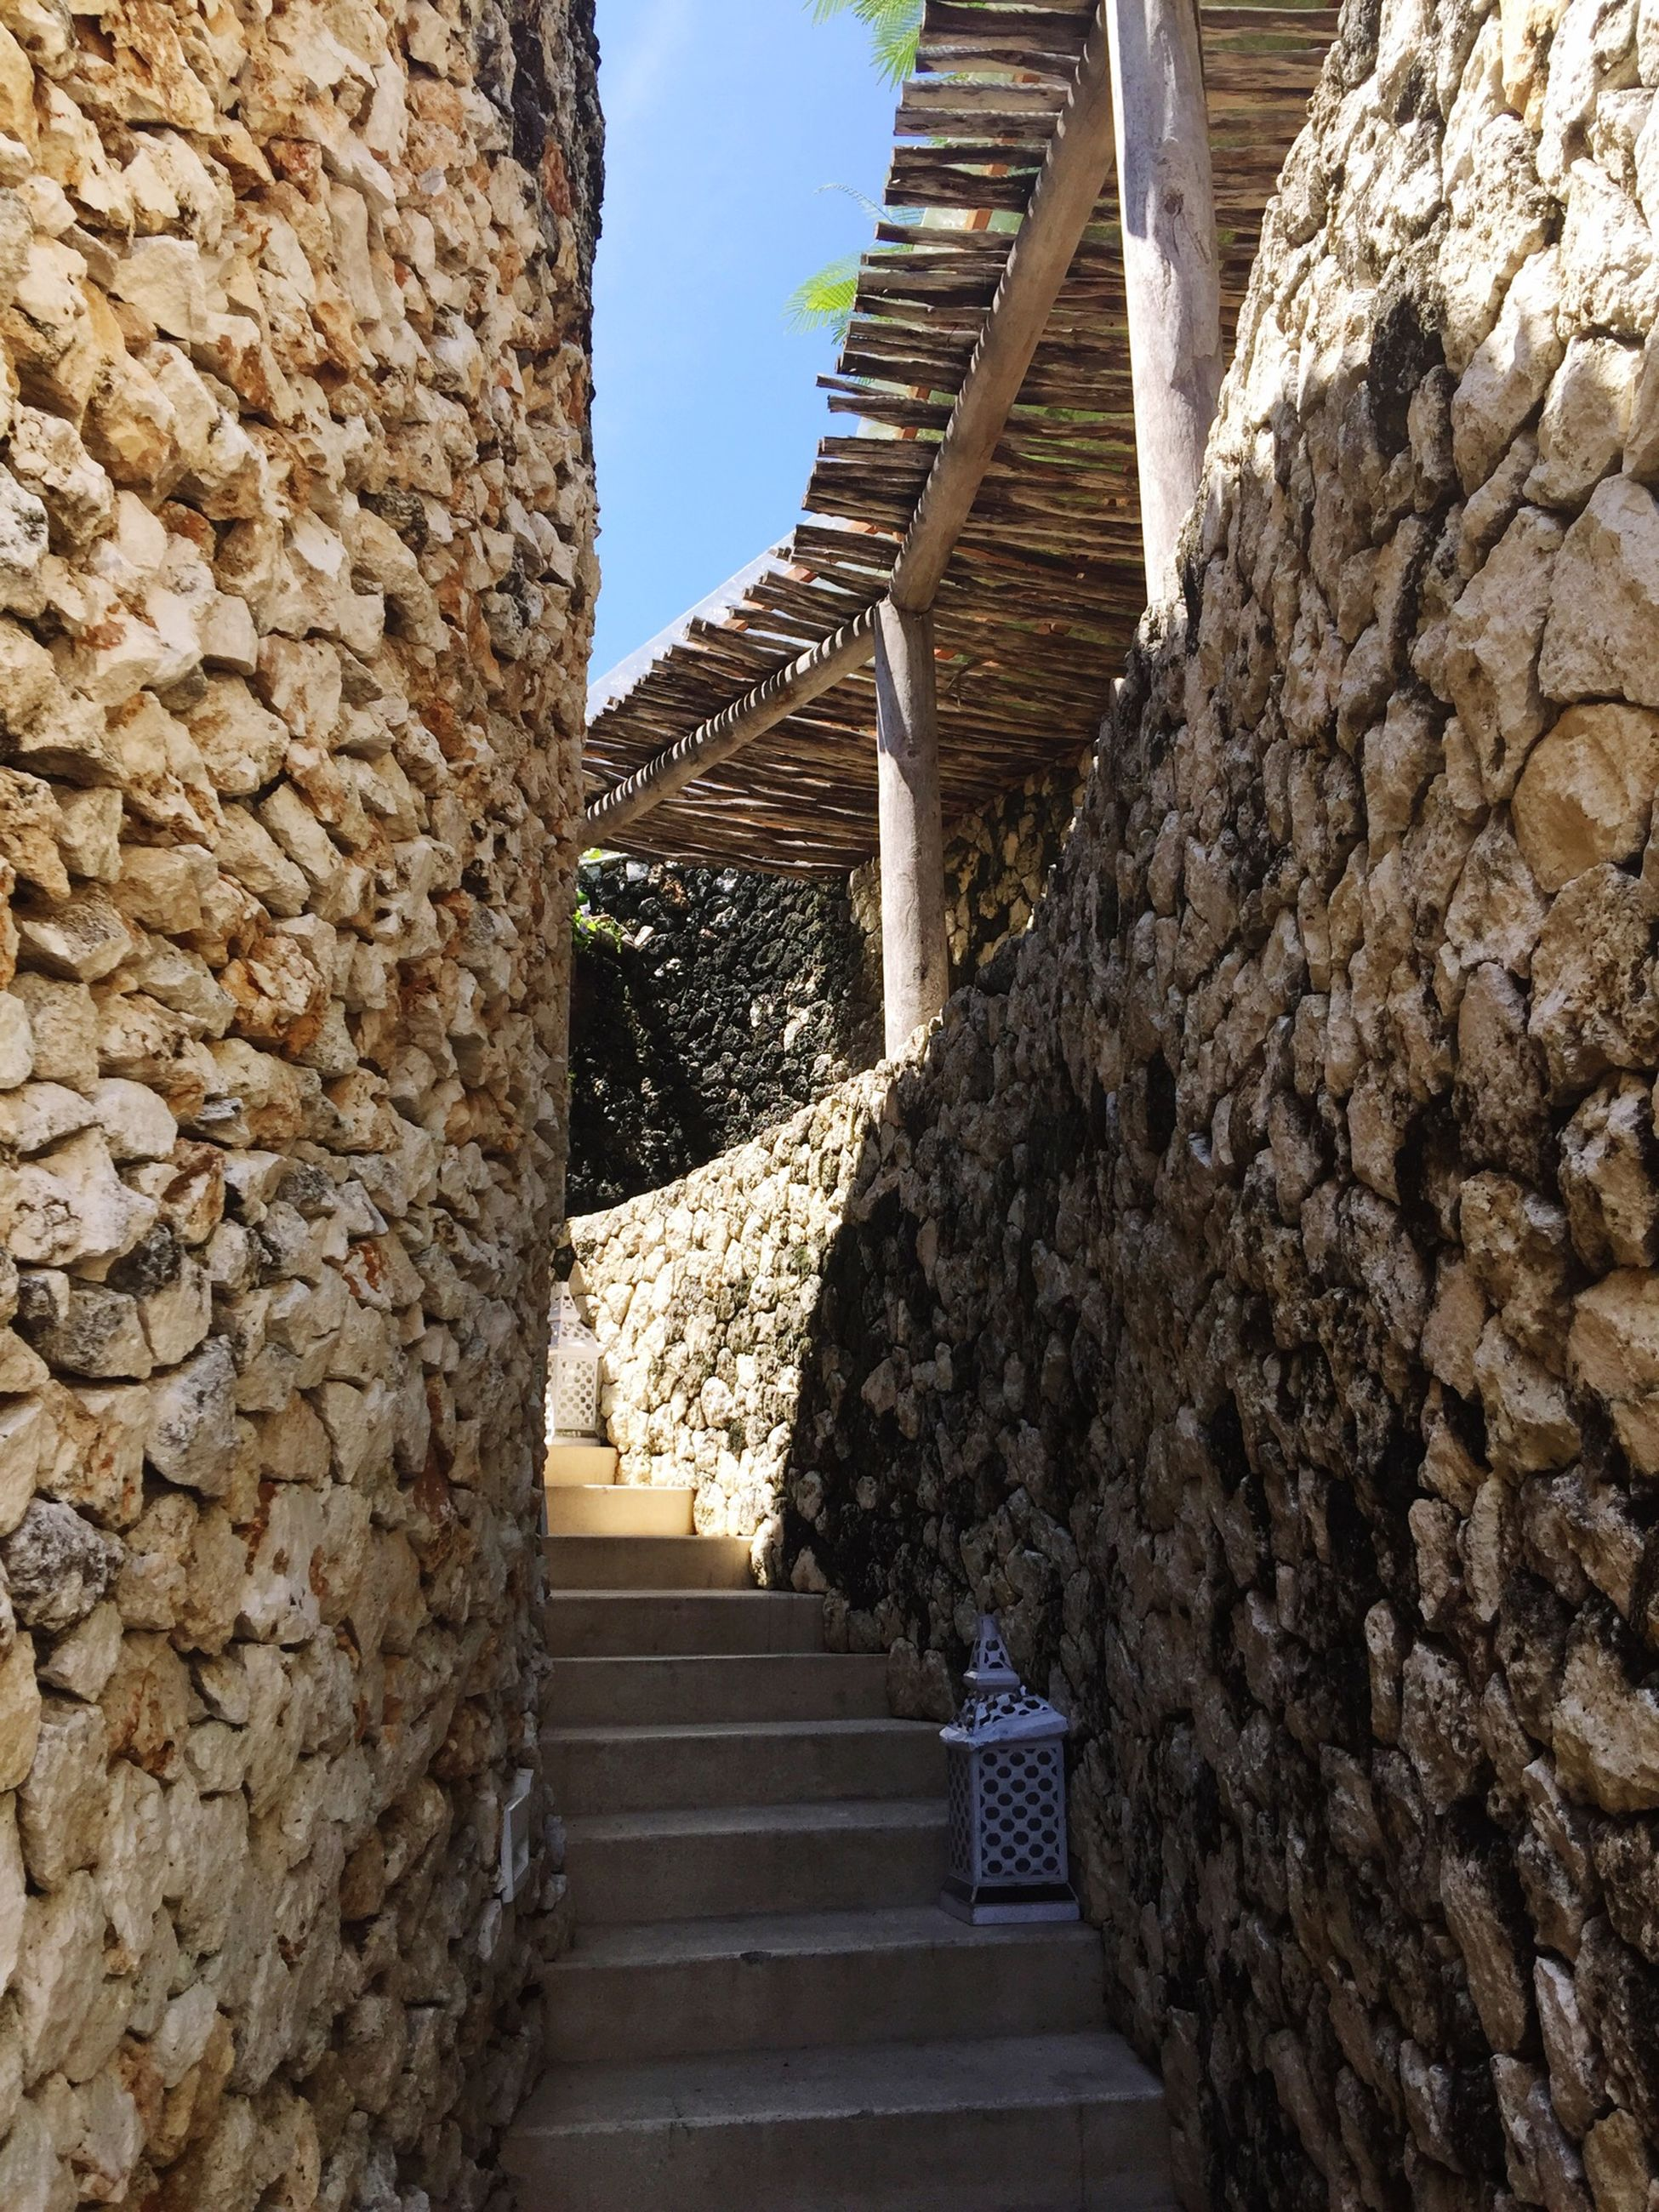 steps, steps and staircases, built structure, architecture, staircase, the way forward, stone wall, building exterior, low angle view, stairs, railing, stone material, sunlight, history, stone, rock - object, wall - building feature, diminishing perspective, day, leading